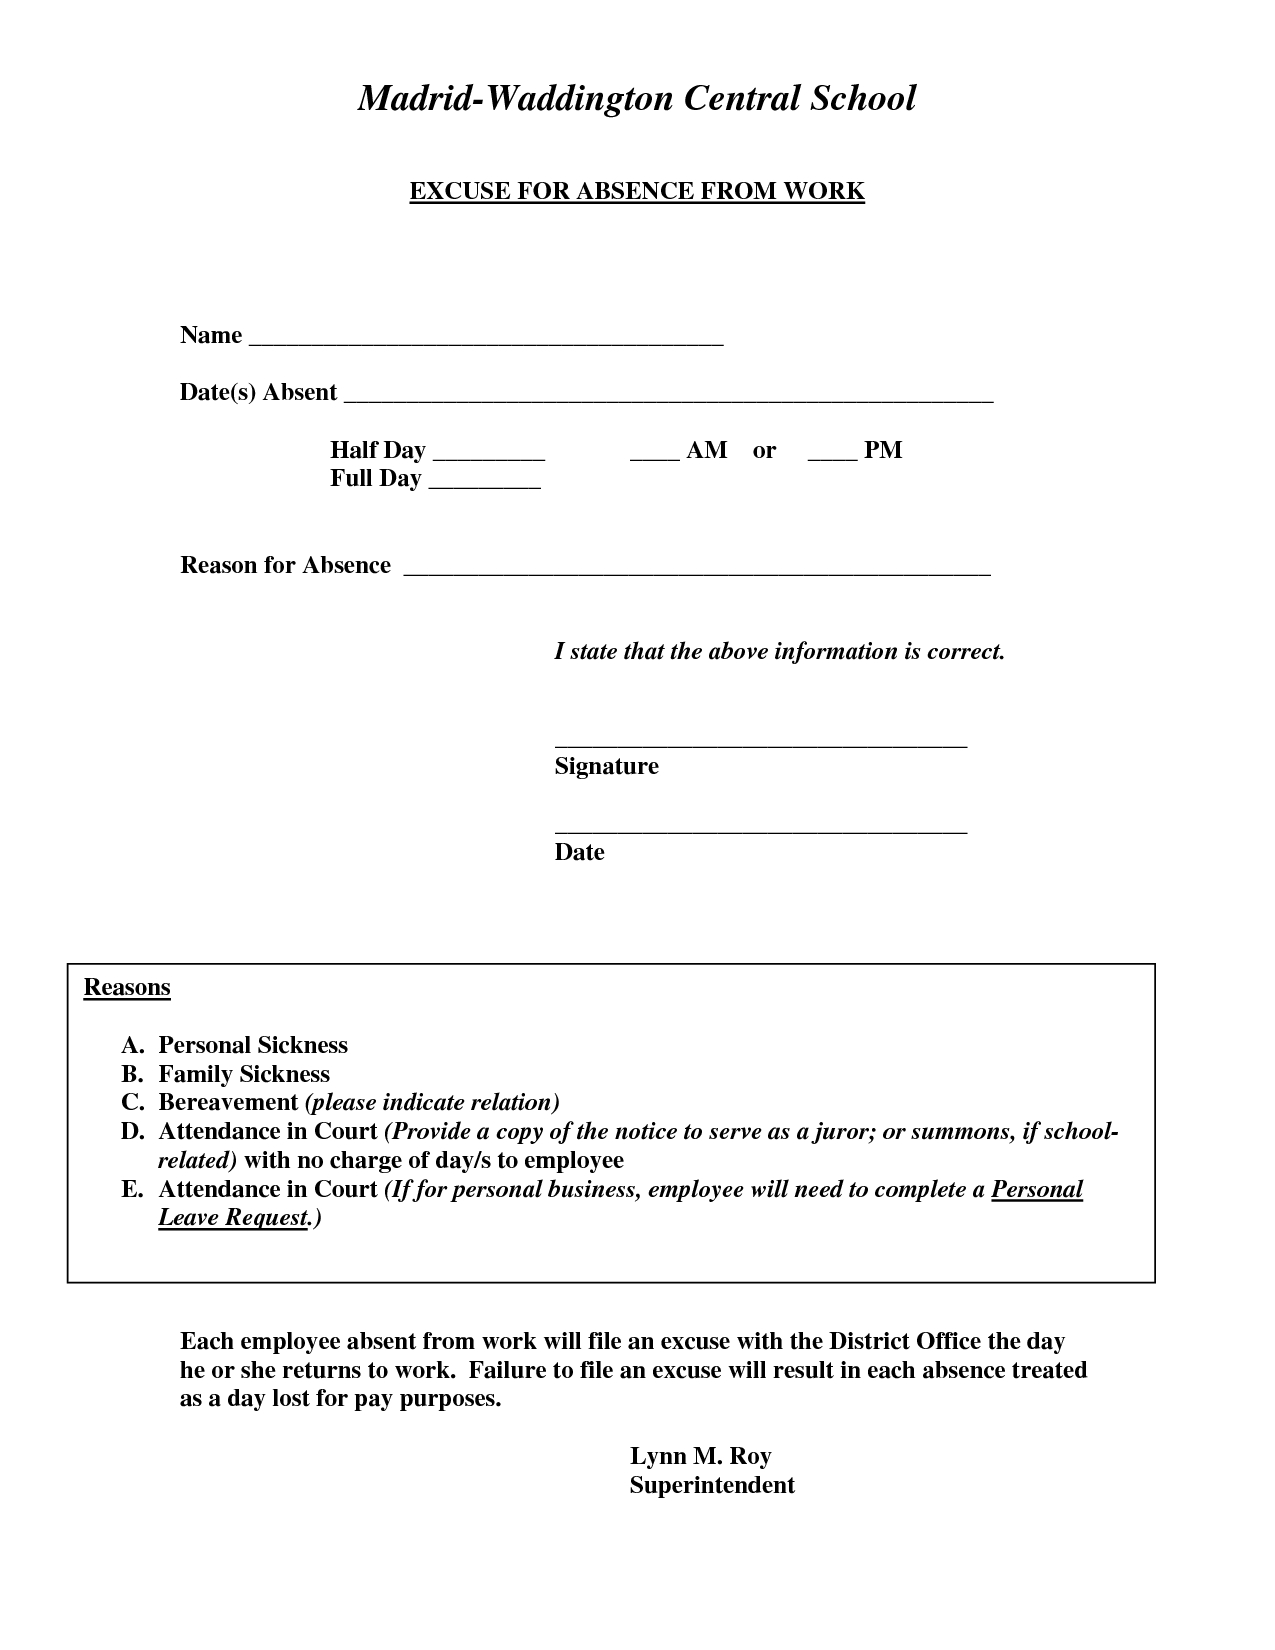 Doctors Excuse For Work Template   Excuse For Absence From Work - Free Printable Doctors Excuse